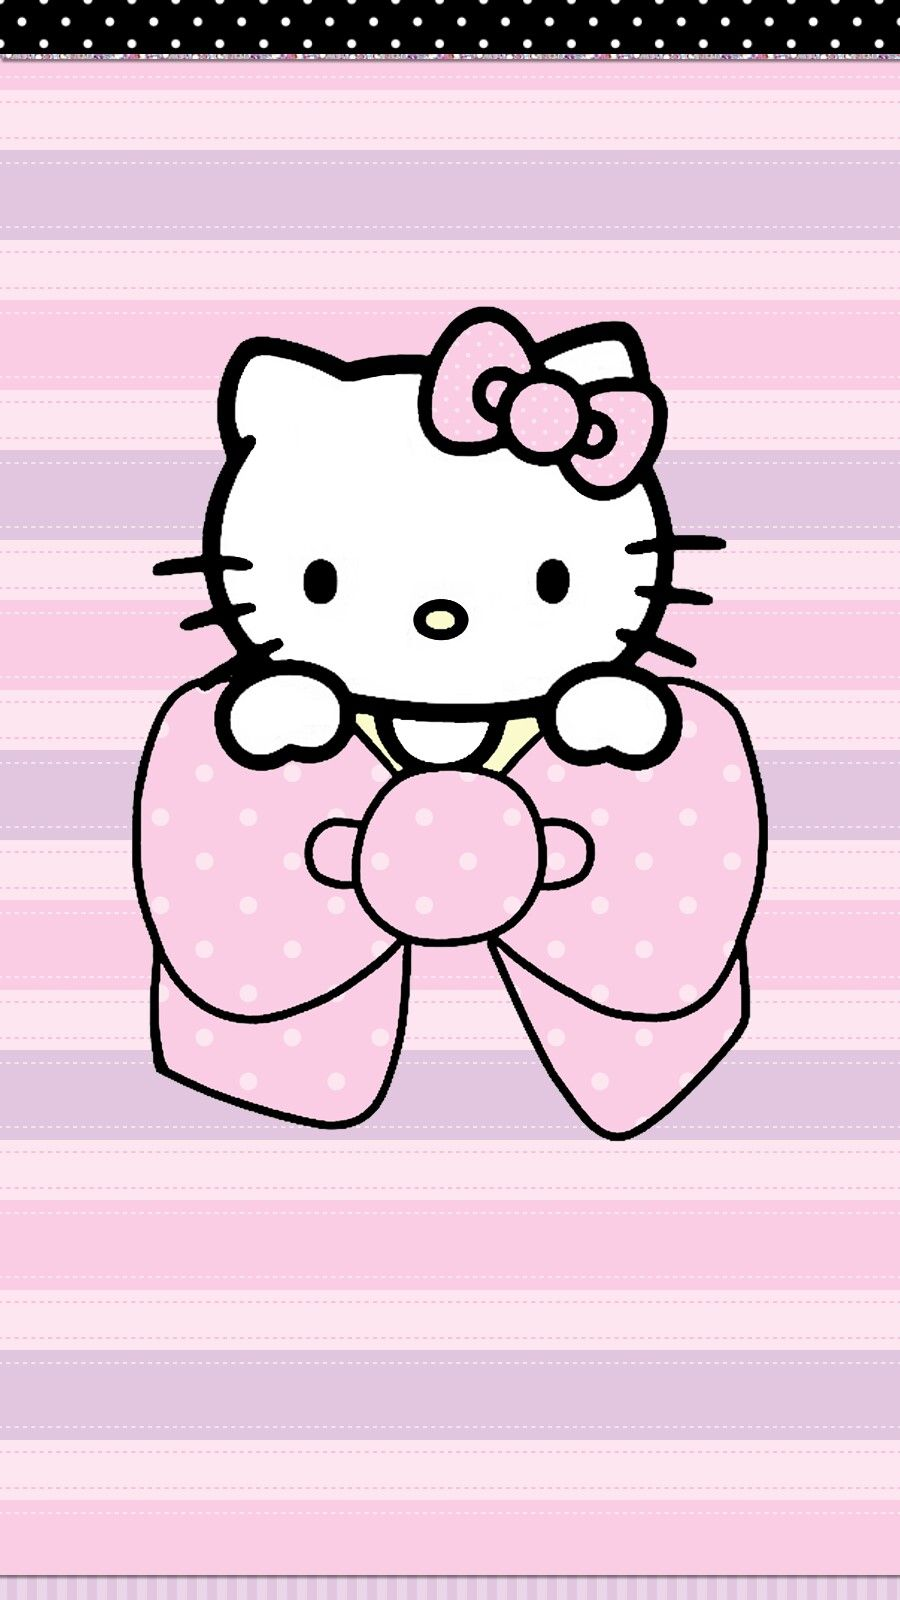 WoowPaper Iphone Cute Cartoon 3d Wallpapers